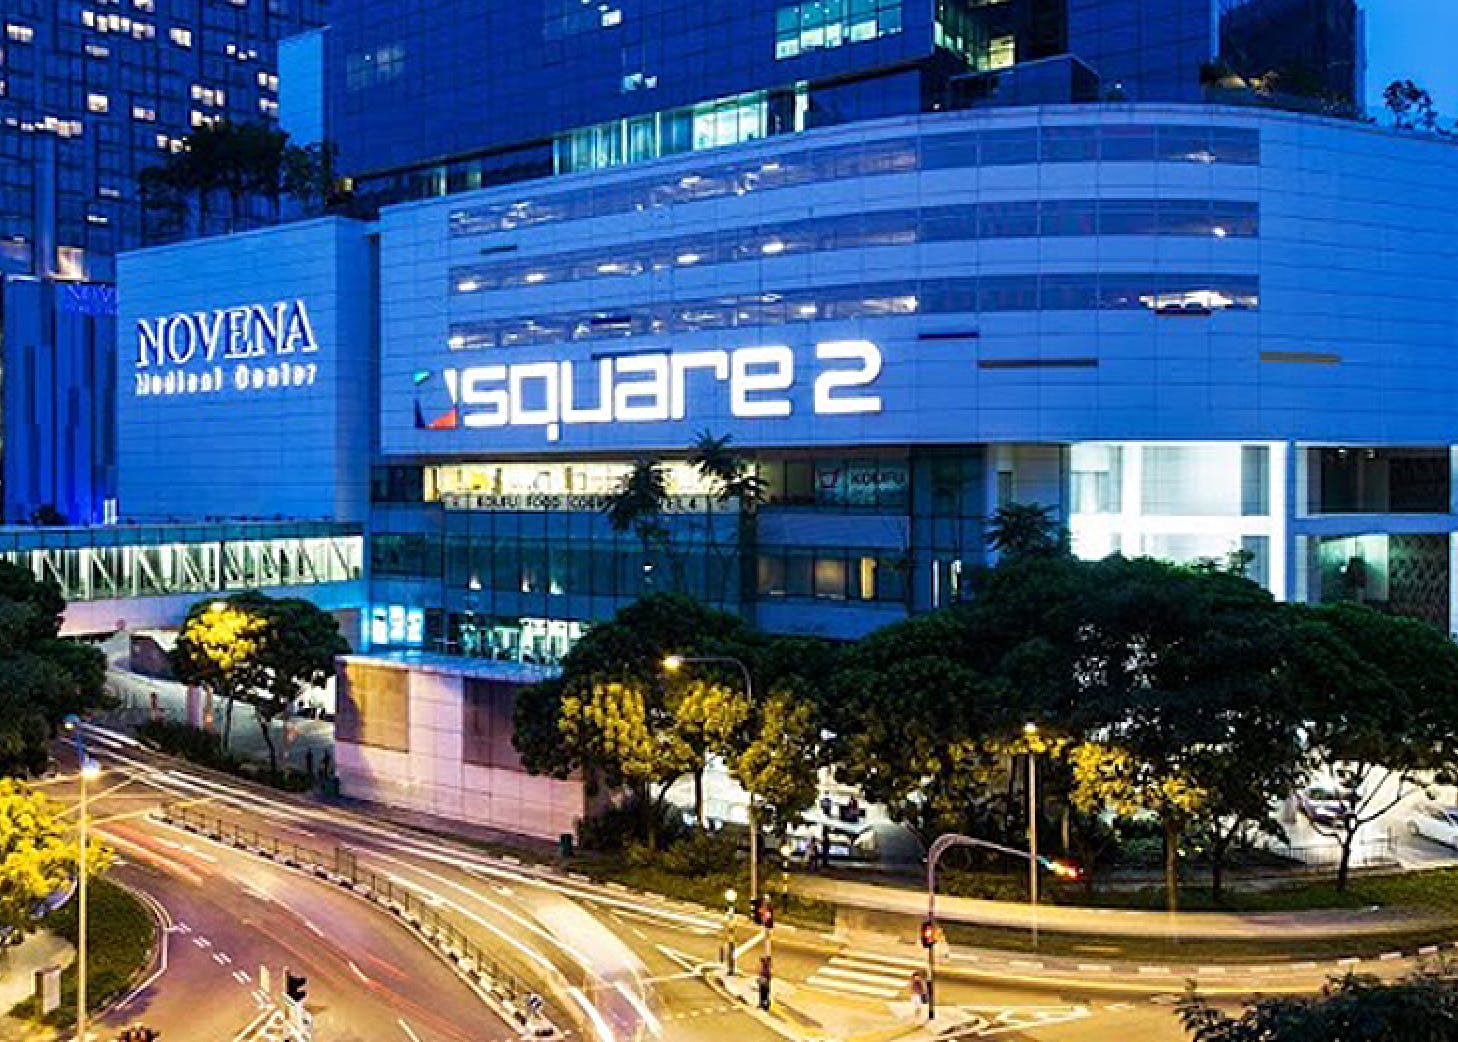 Square 2 Shopping Mall